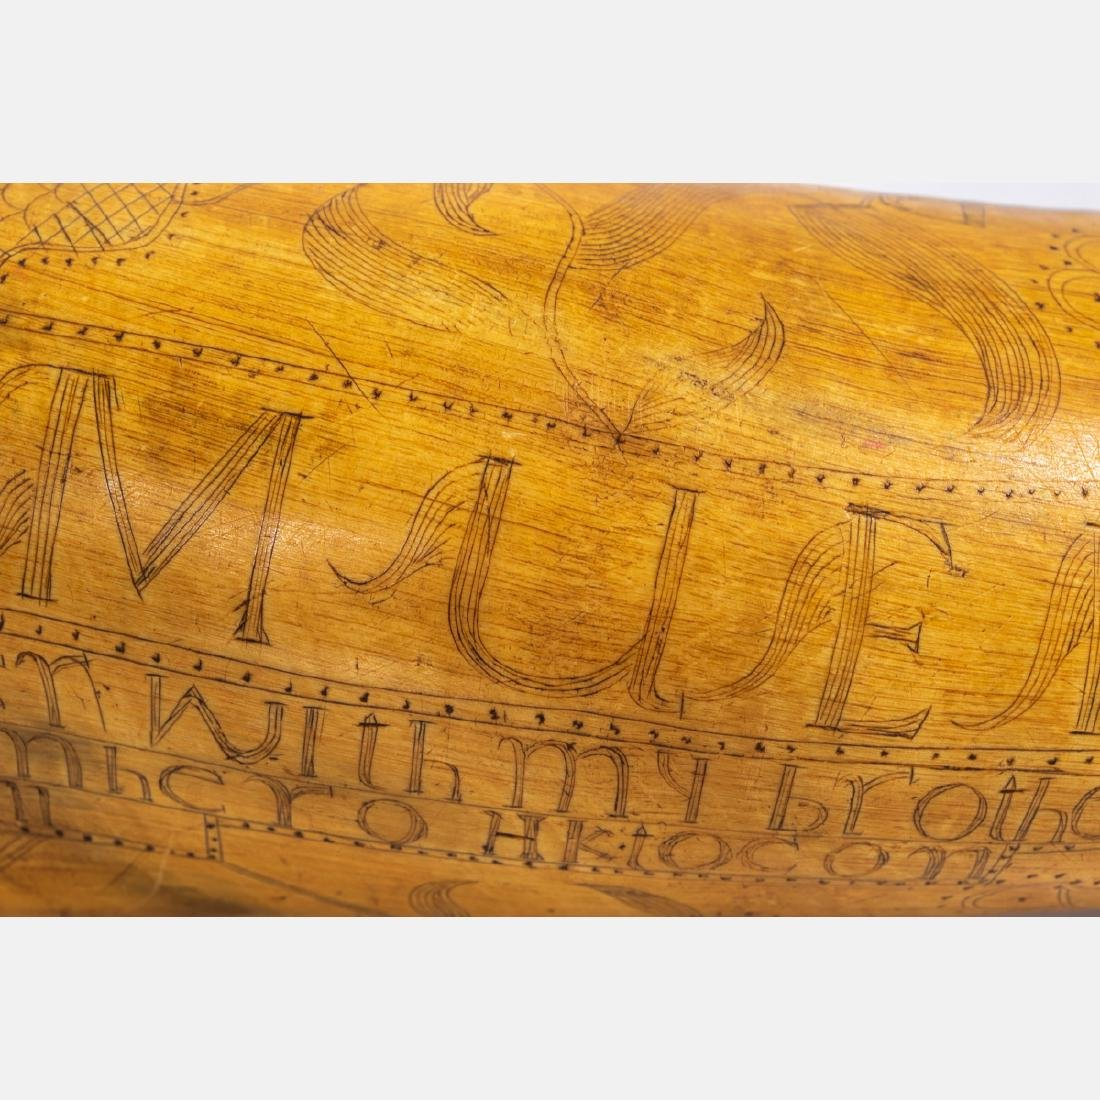 An Engraved French and Indian War Period Powder Horn, - 7